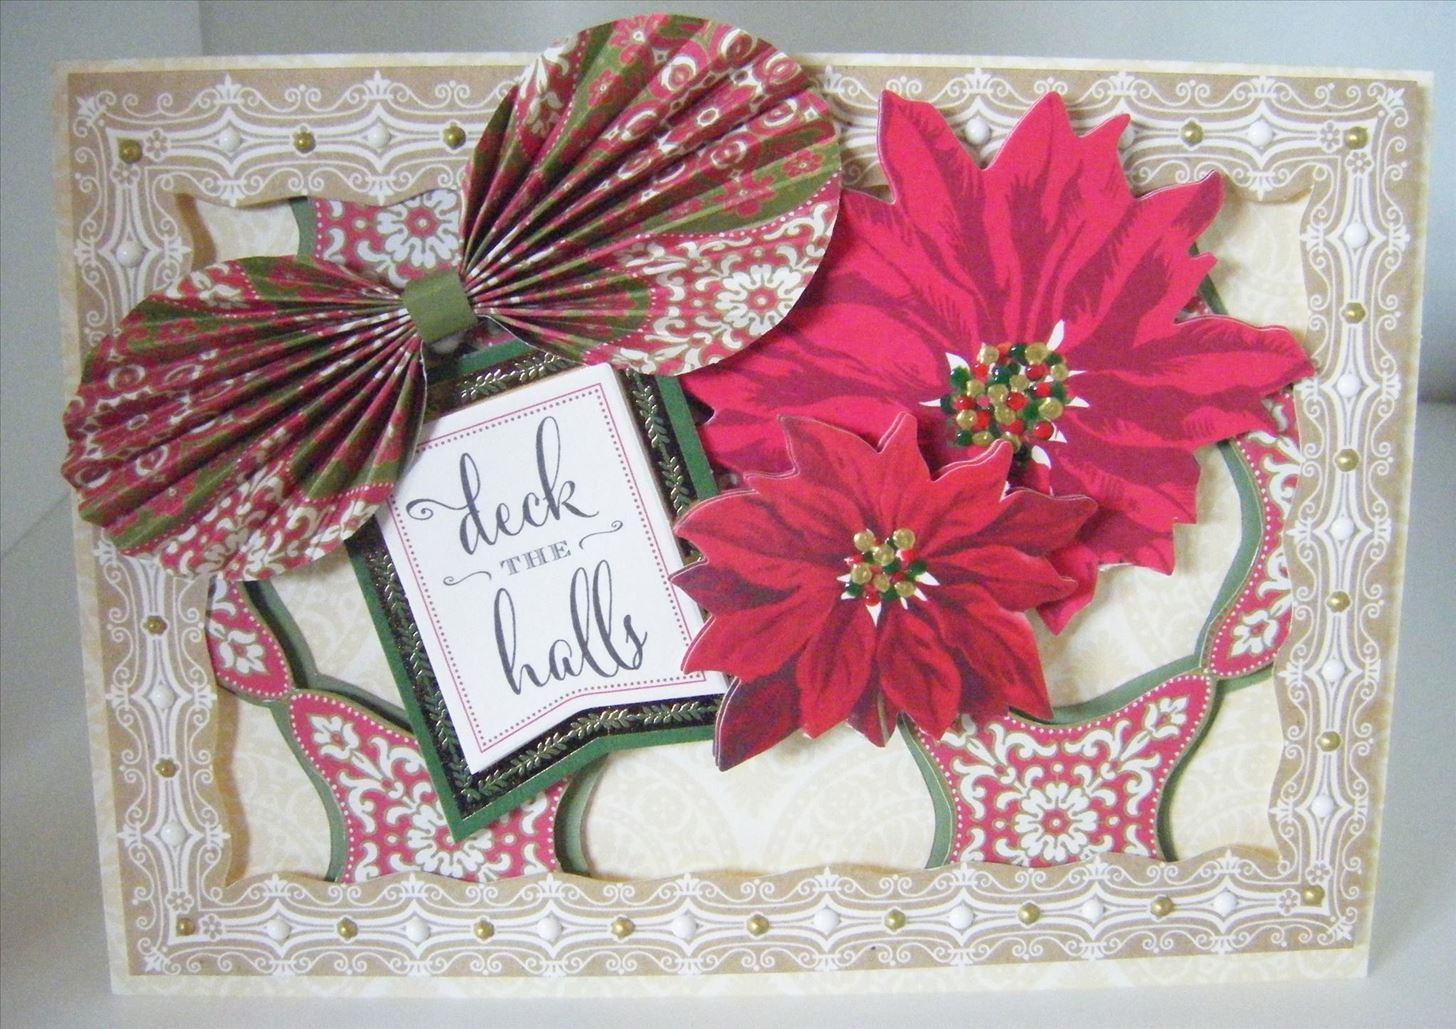 How to Make a Christmas Cut Out Poinsettia Card